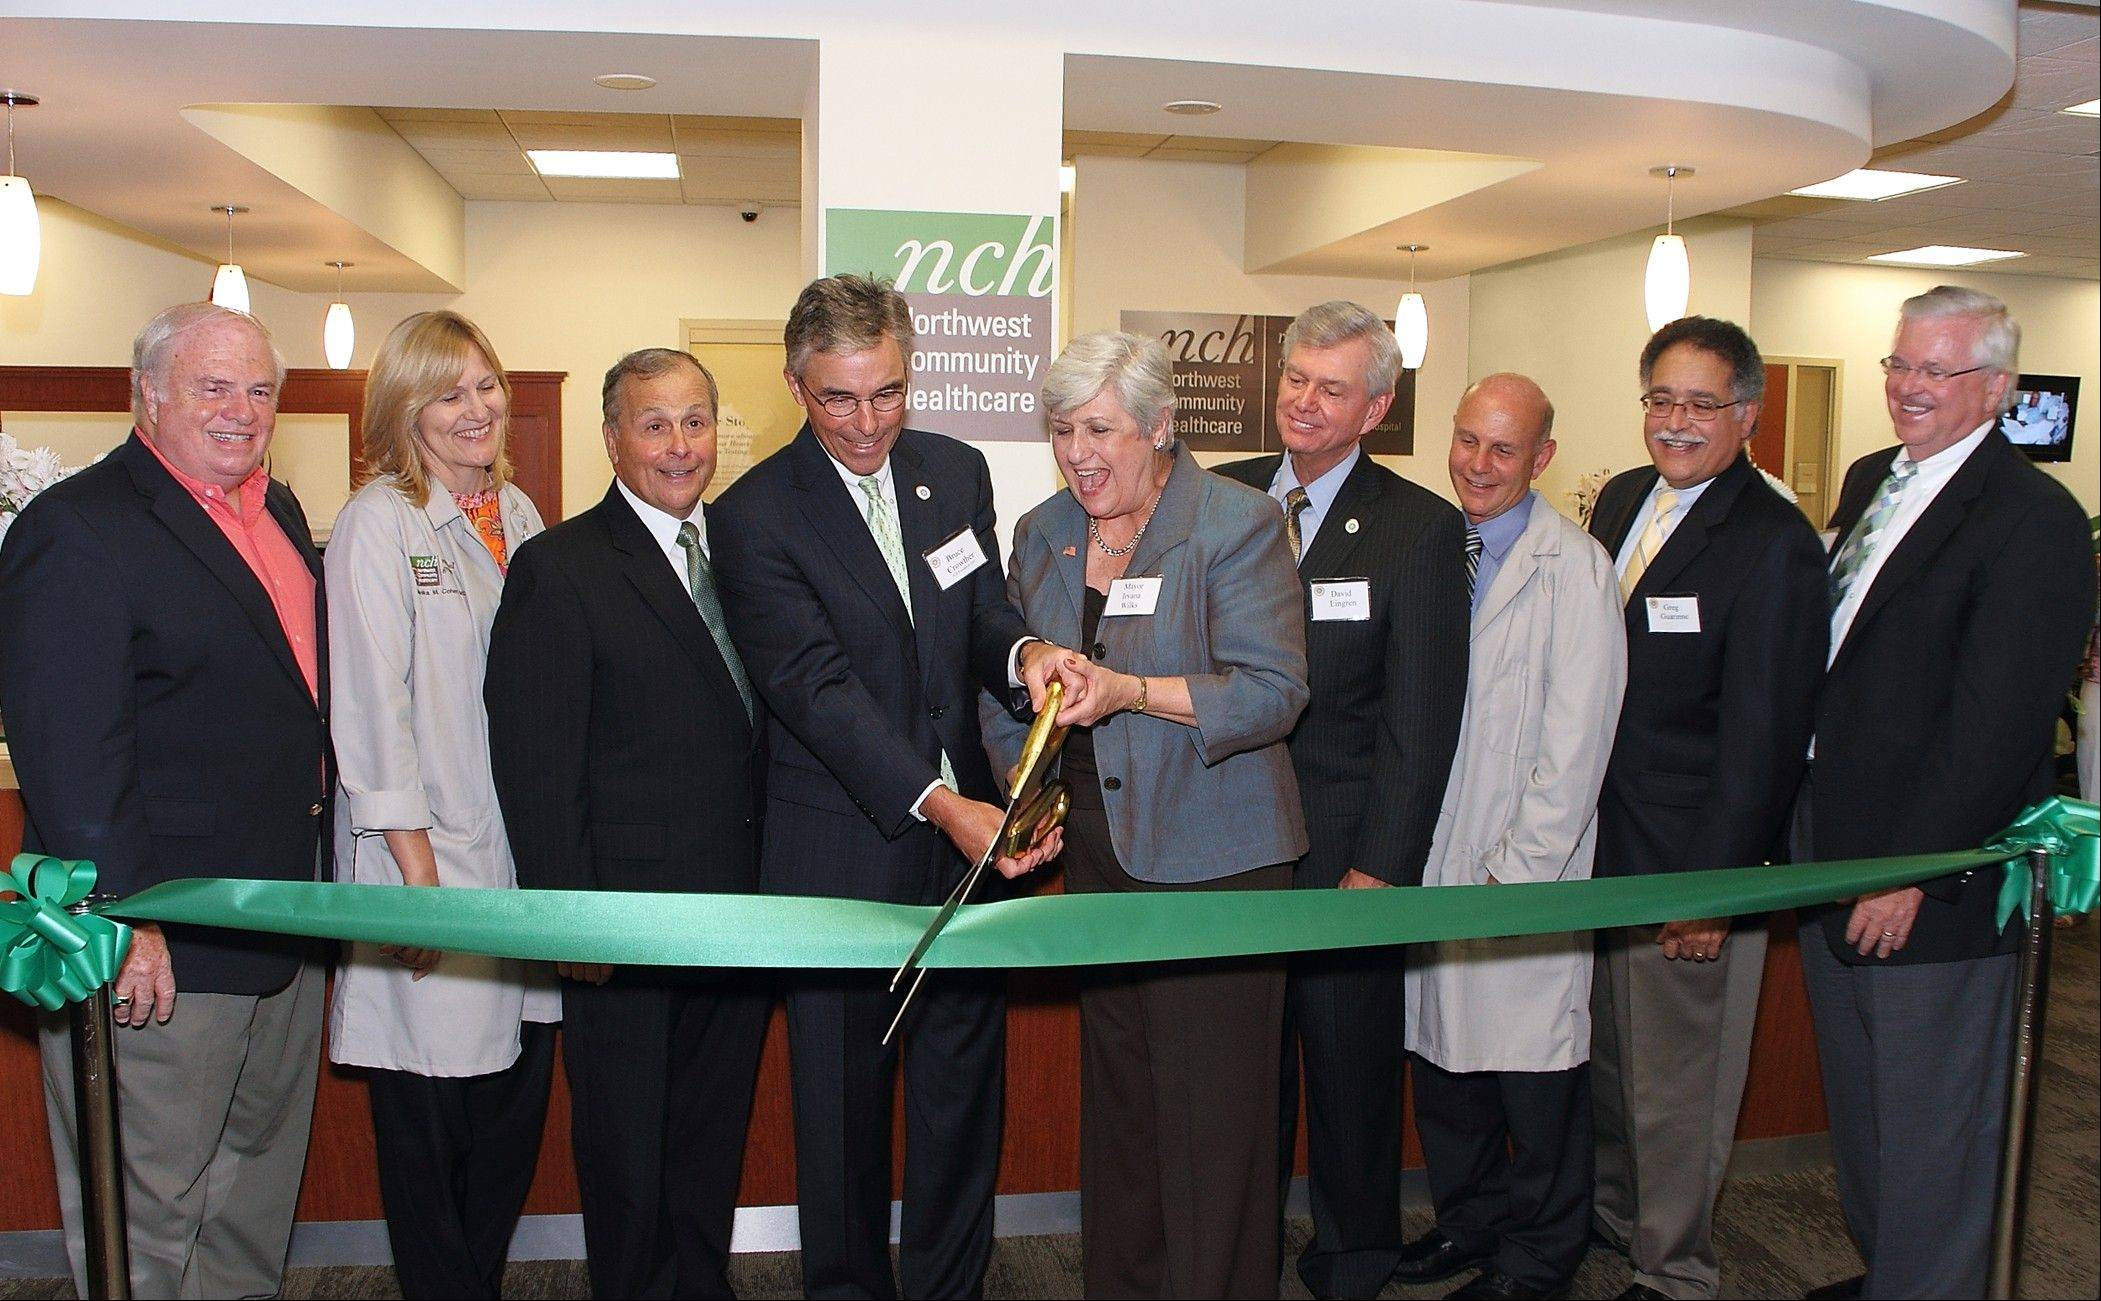 Business and community leaders join Bruce Crowther, president and chief executive officer of Northwest Community Hospital, and Mount Prospect Village President Irvana Wilks at the hospital�s new health center. The Mount Prospect center will hold an open house Saturday, Aug. 6.